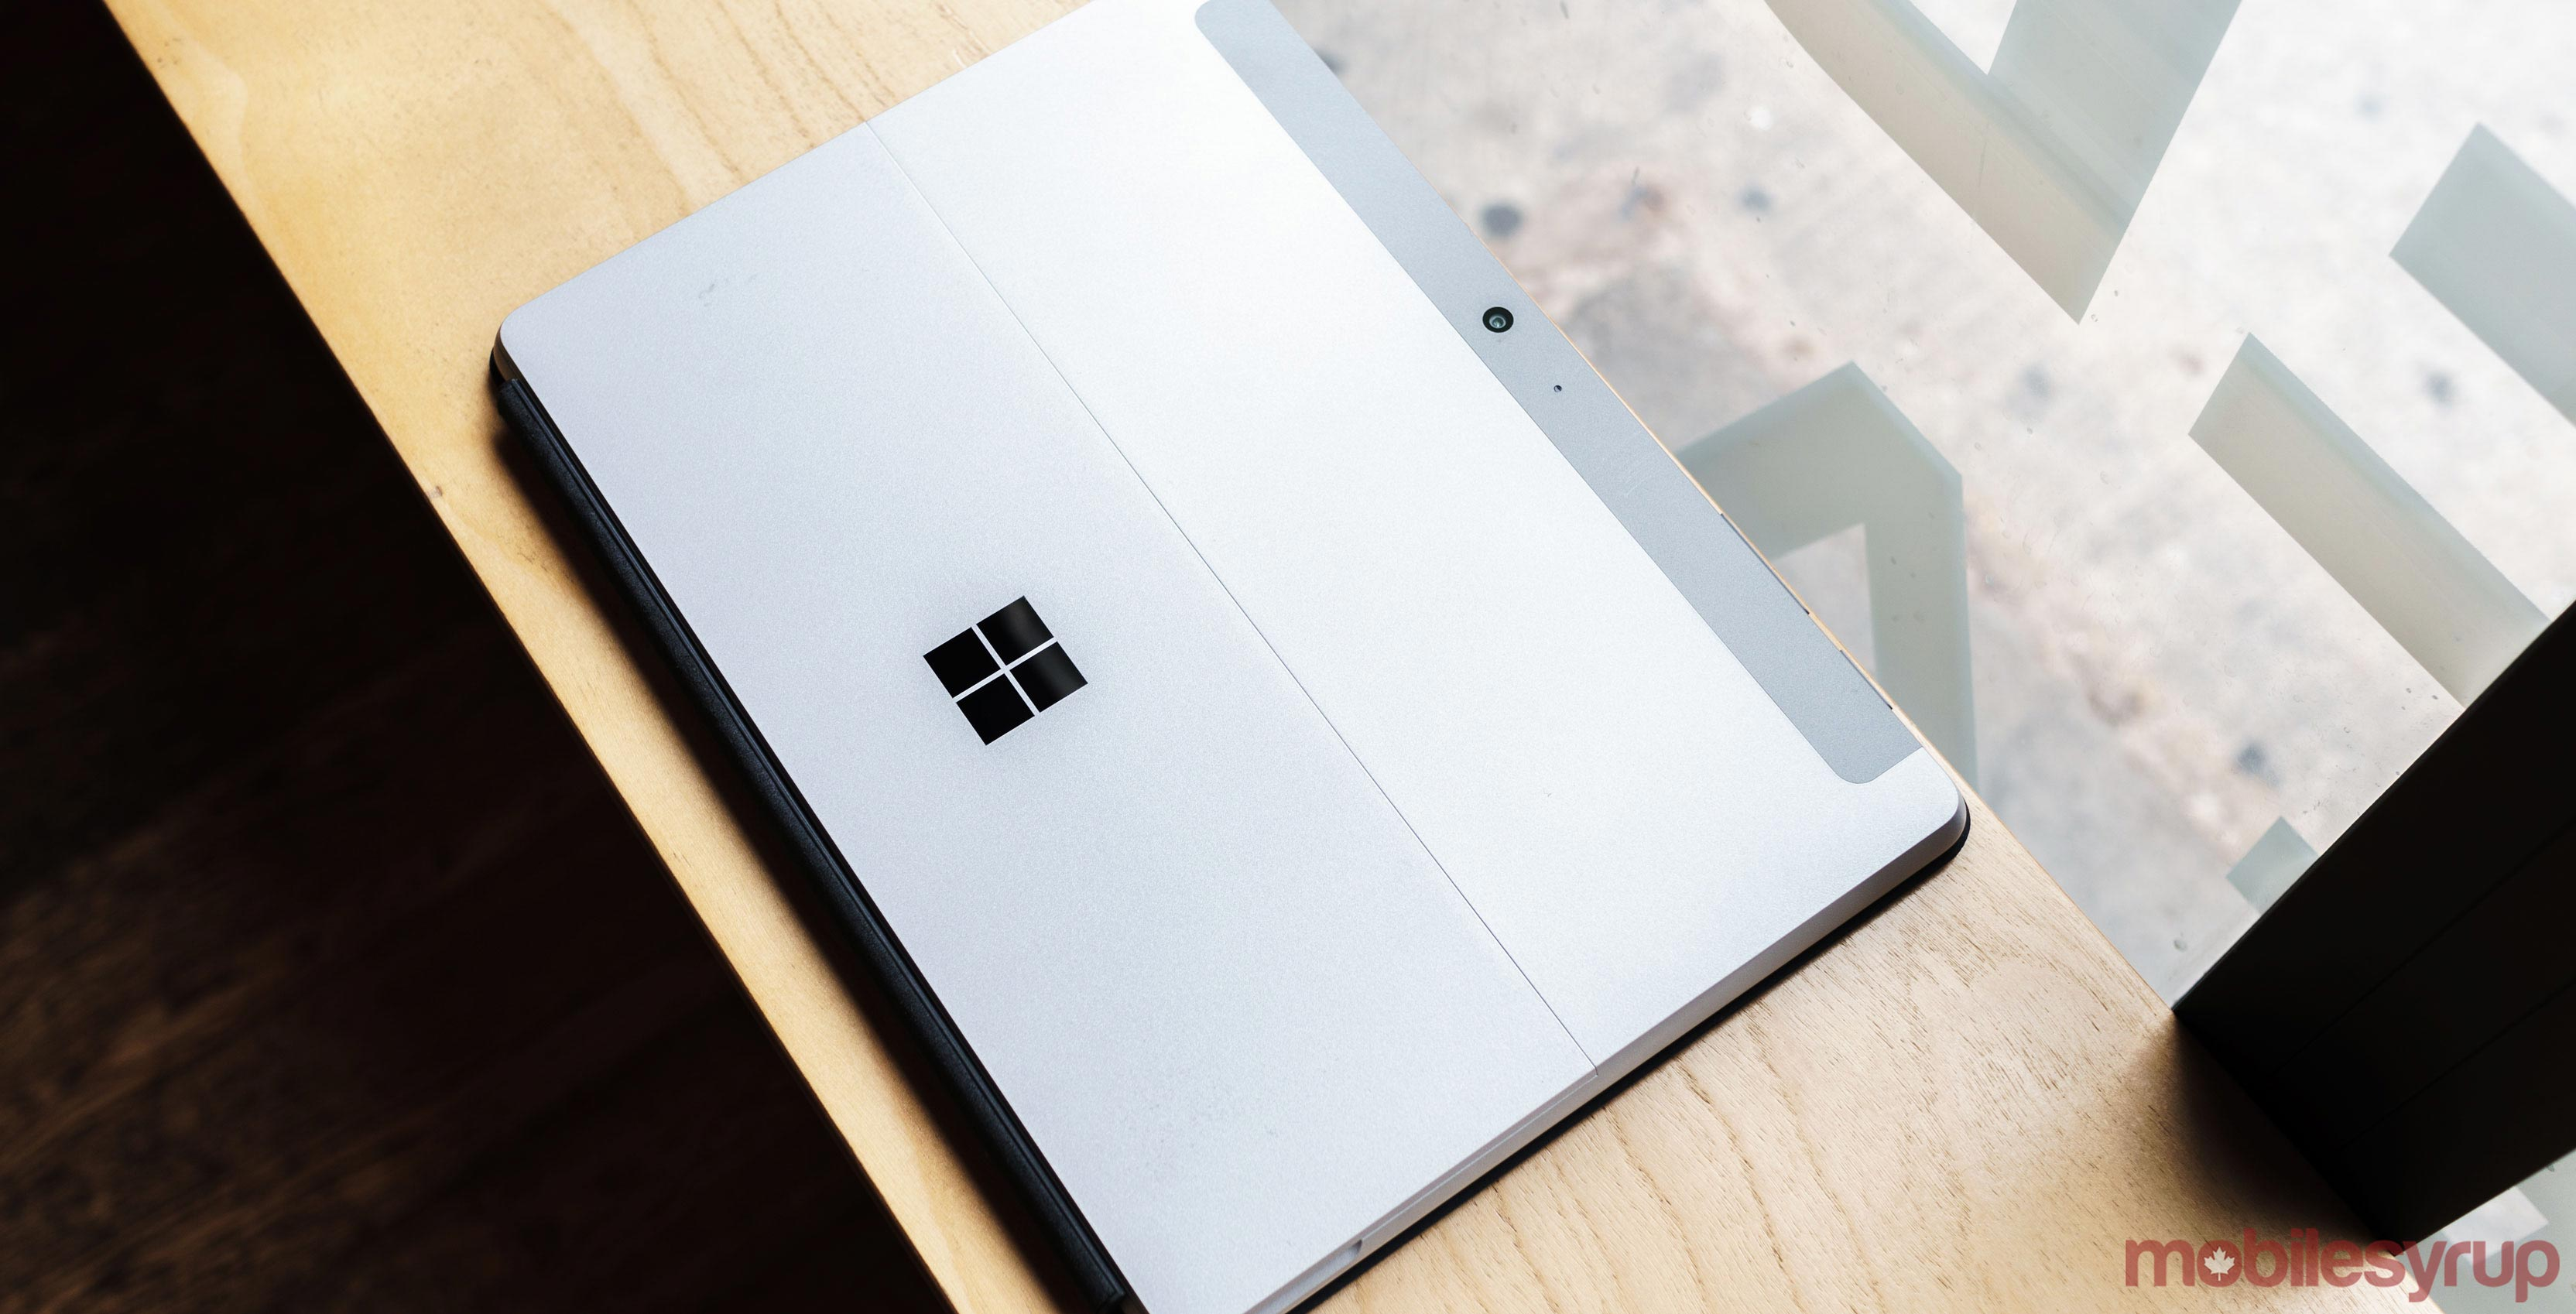 Microsoft expands Surface family with new Surface Go LTE Advanced model